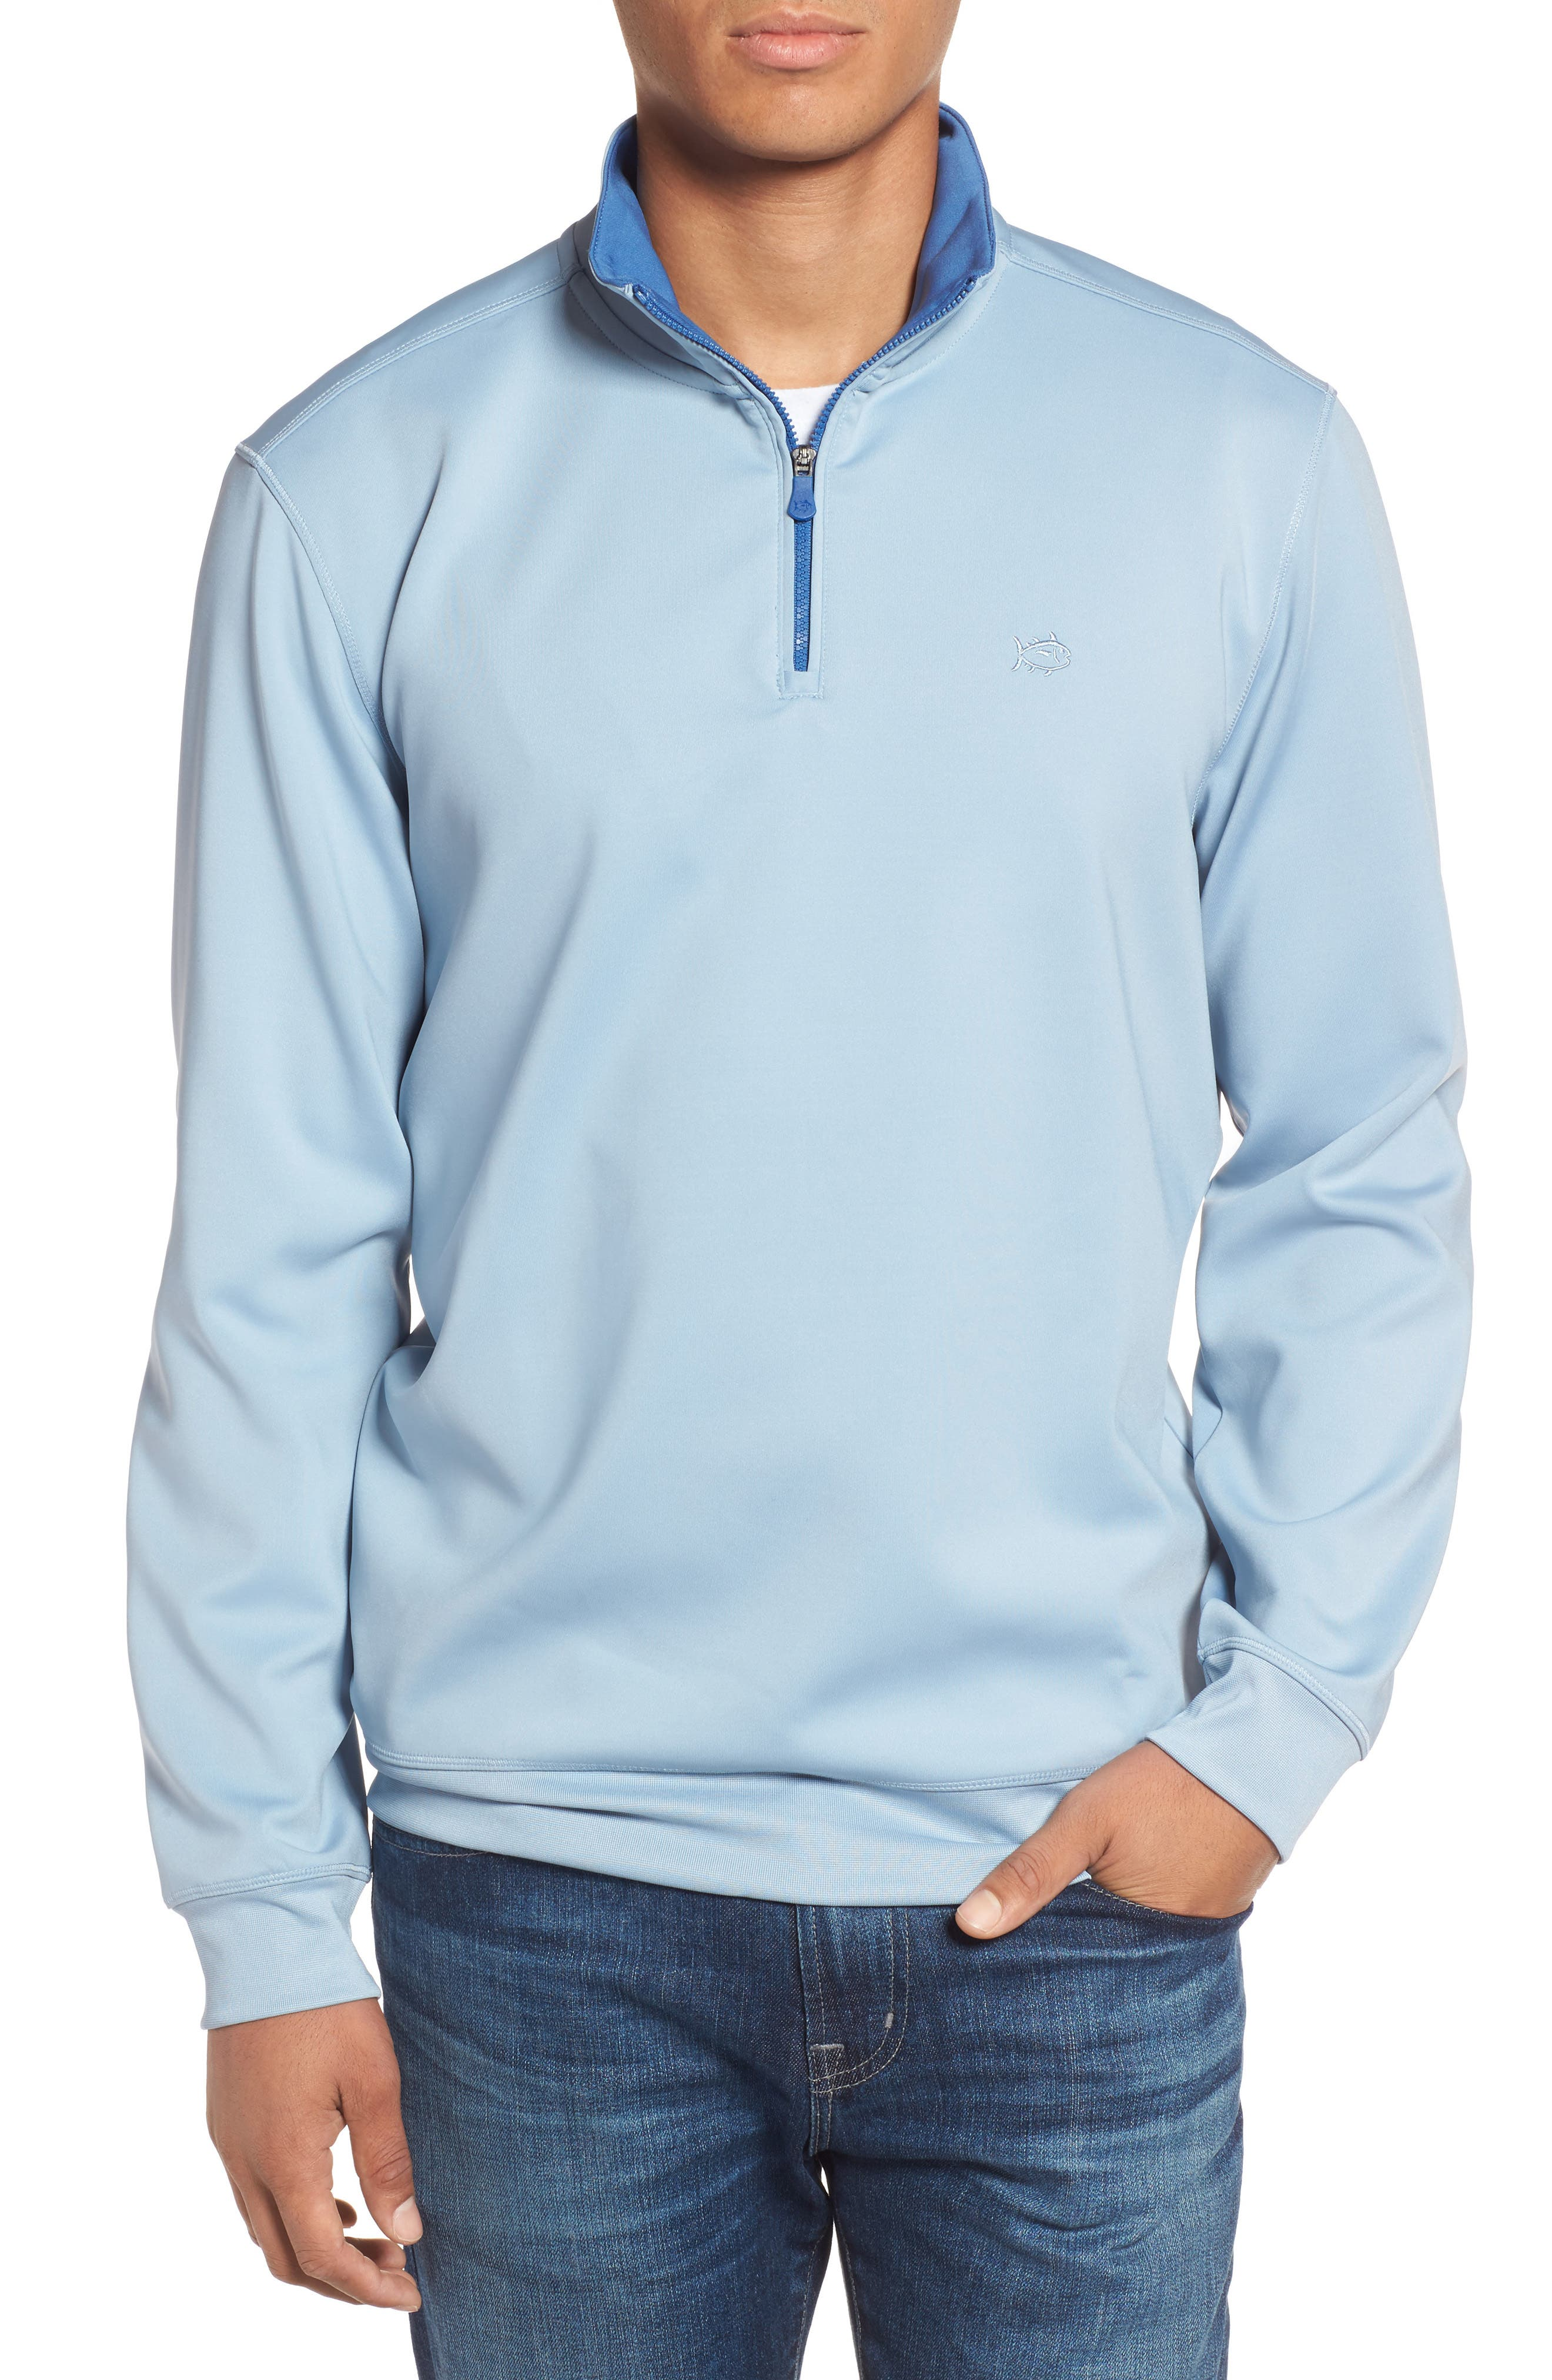 19th Hole Quarter Zip Pullover,                         Main,                         color, 439